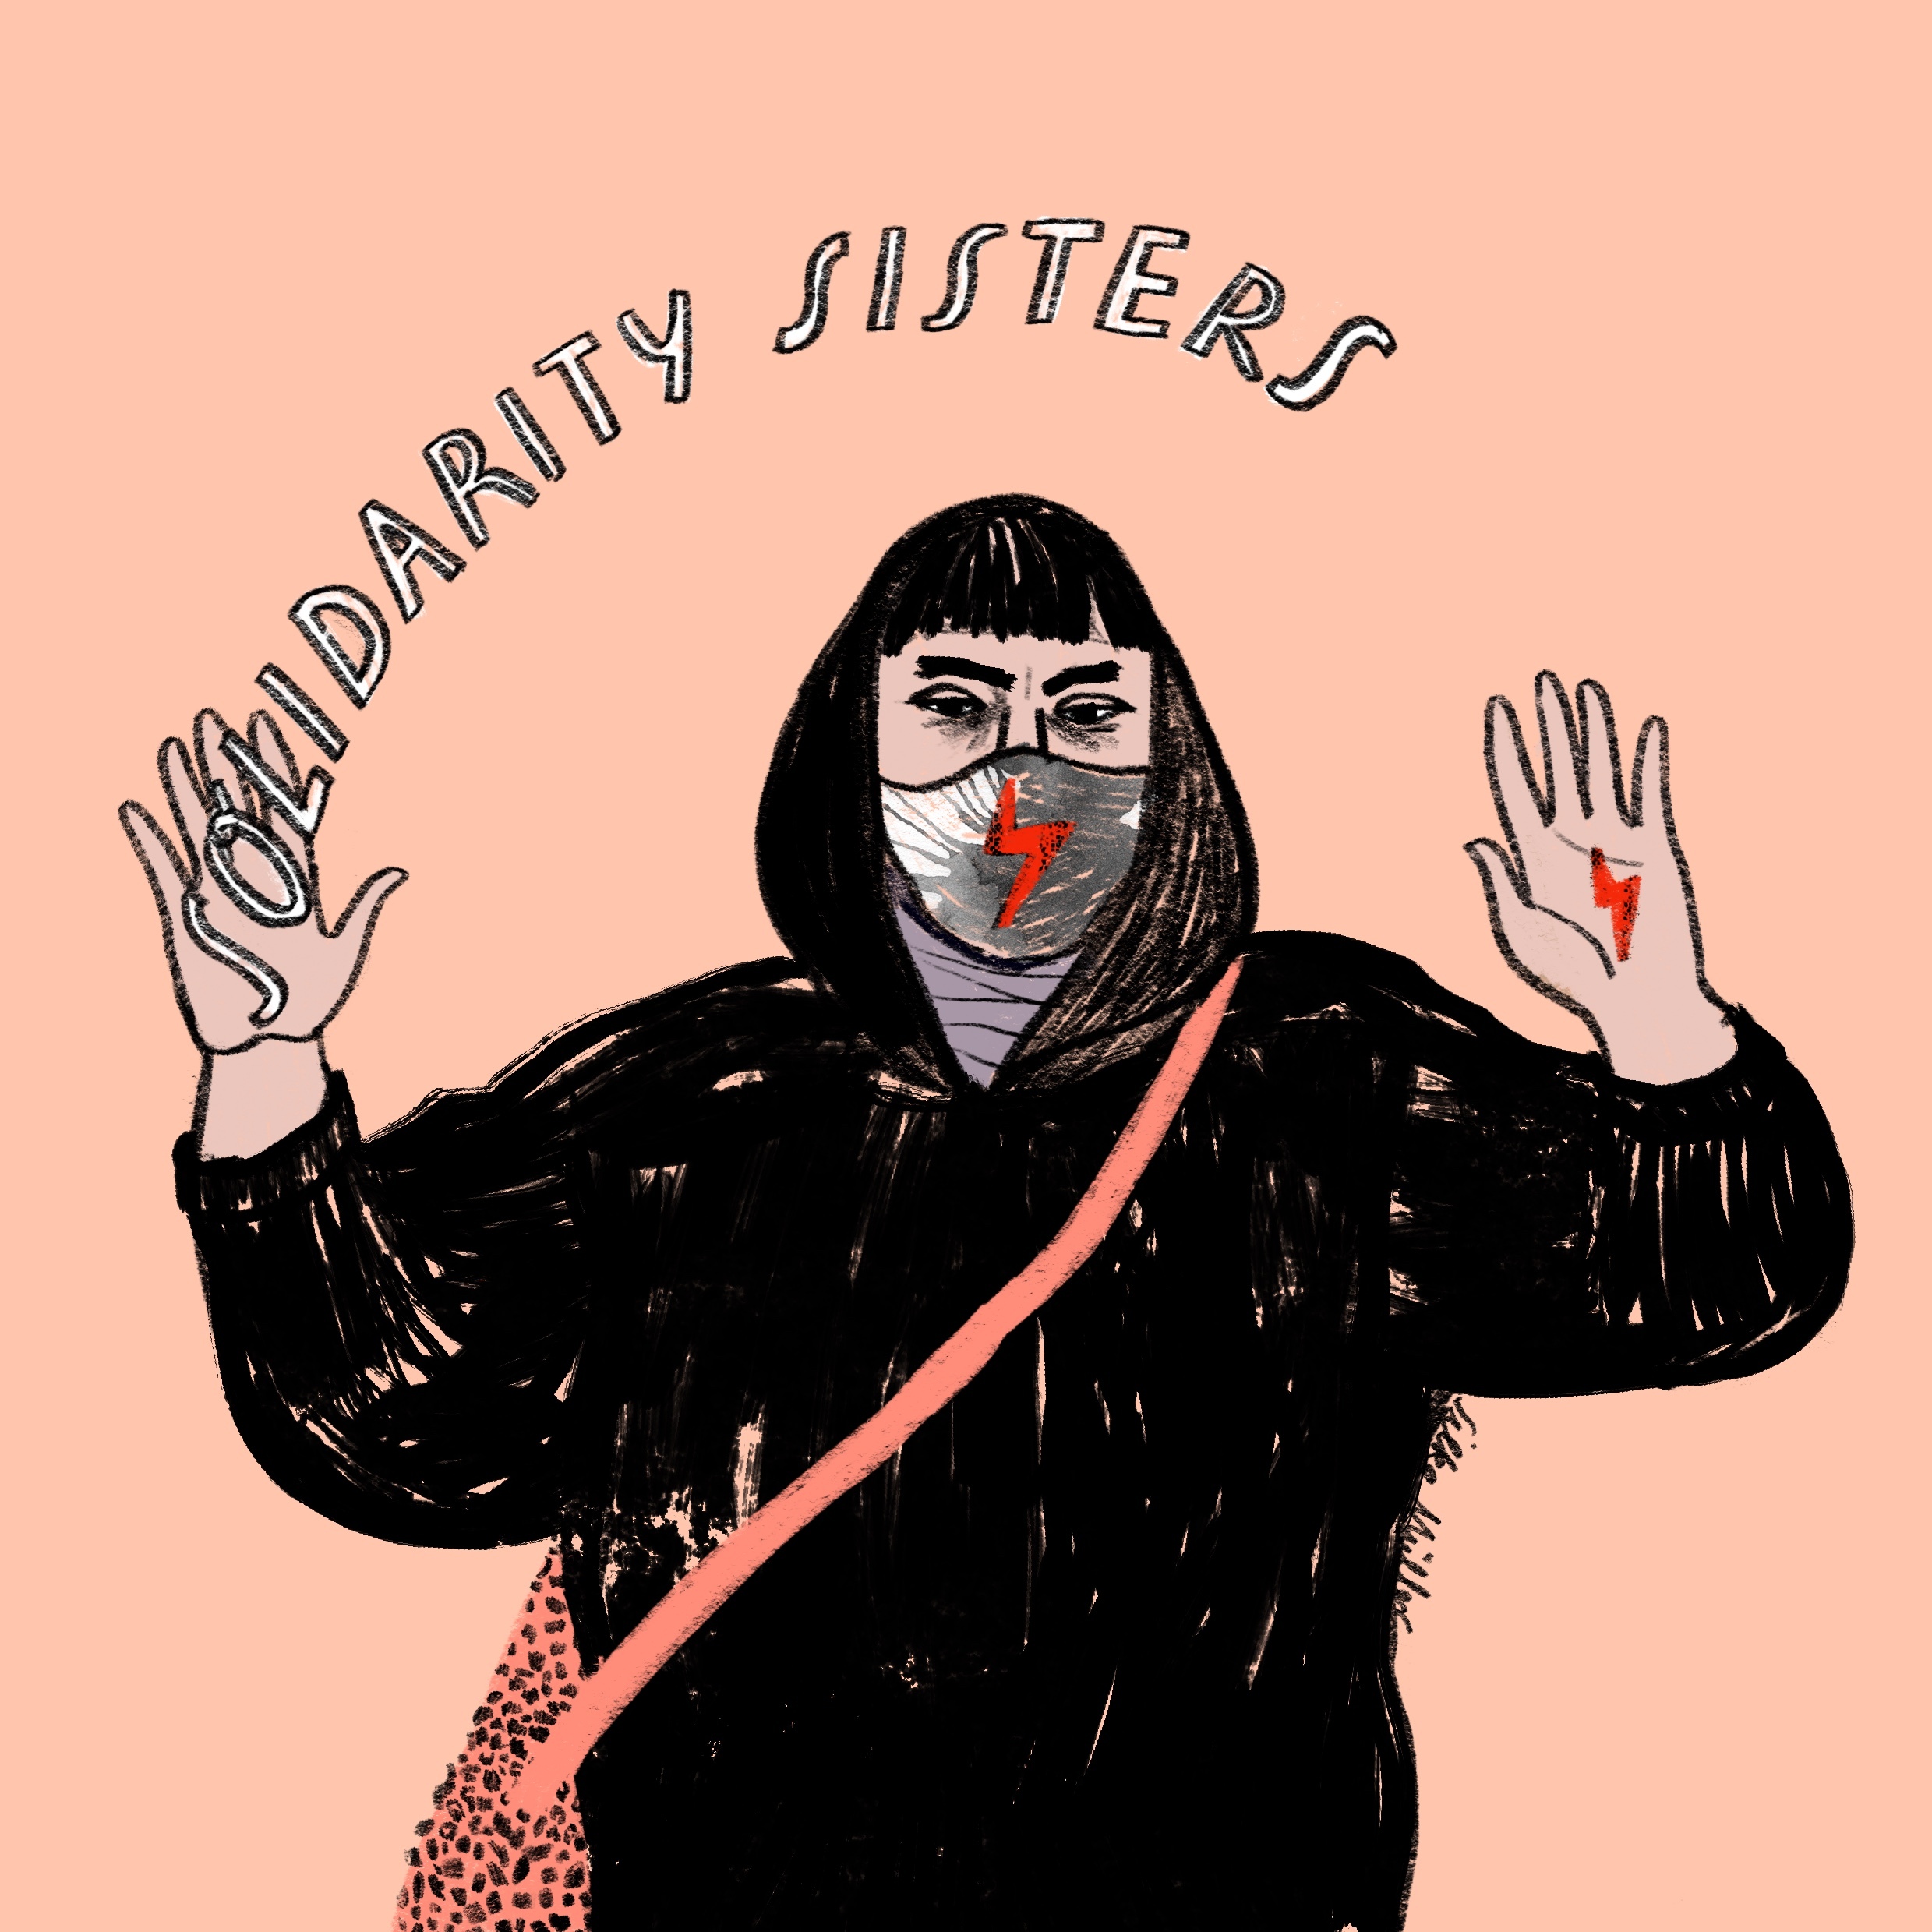 strajk kobiet | polish women strike | Illustration: Silke Müller |